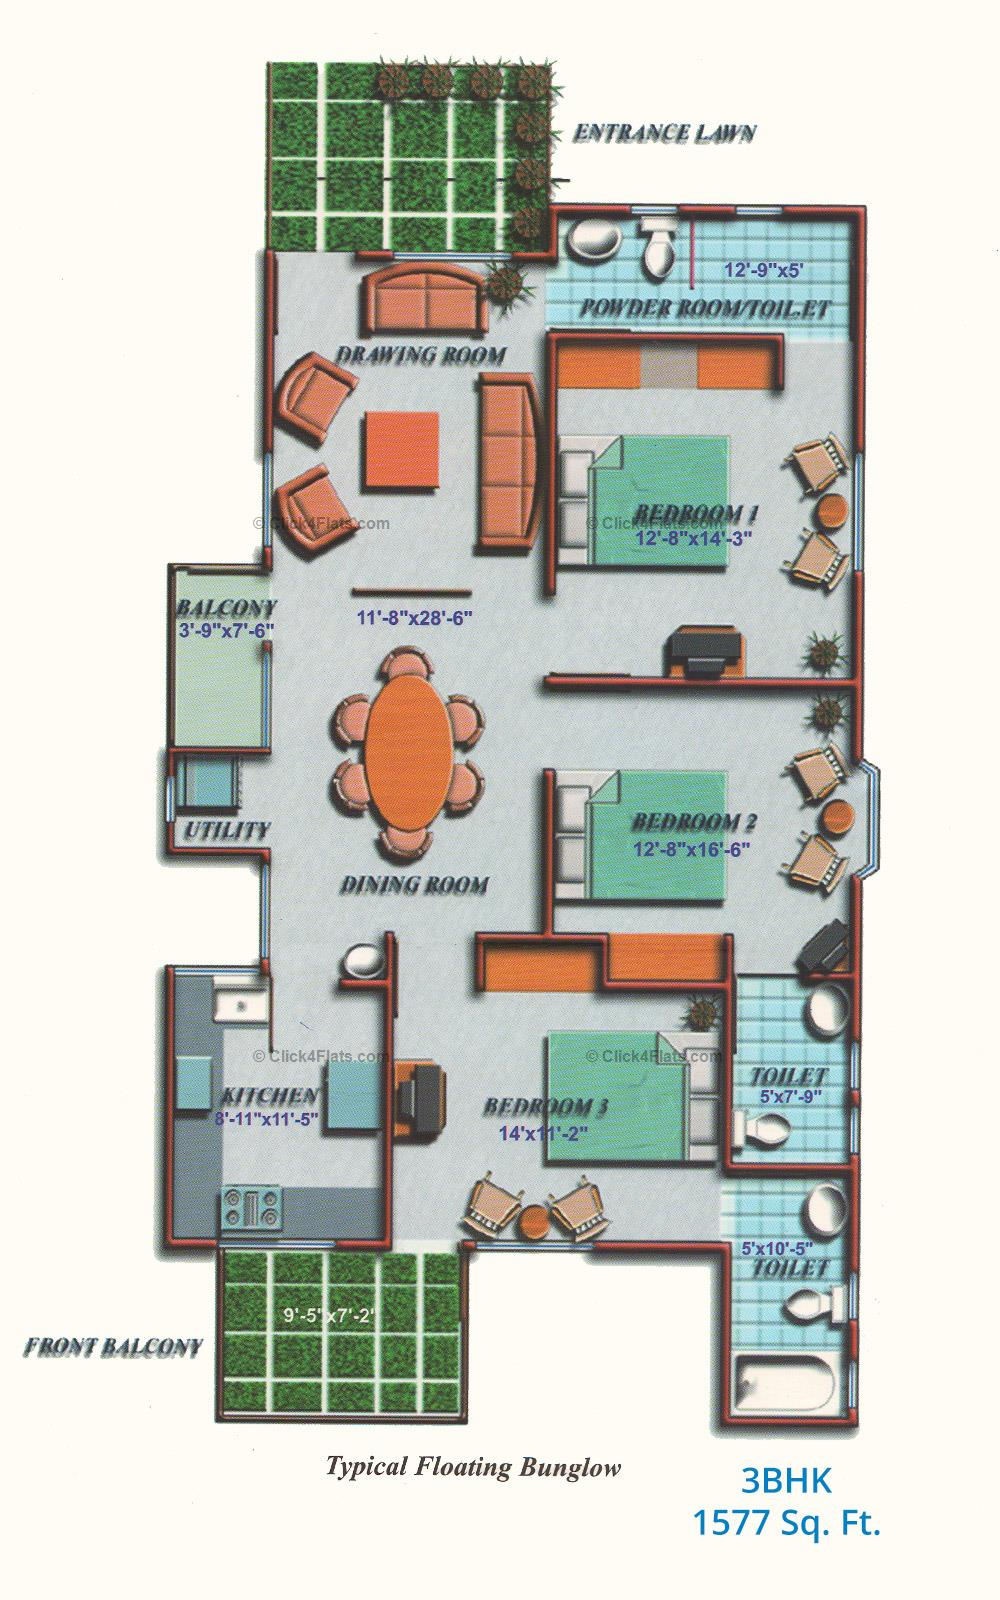 The Crown Plaza 3 BHK